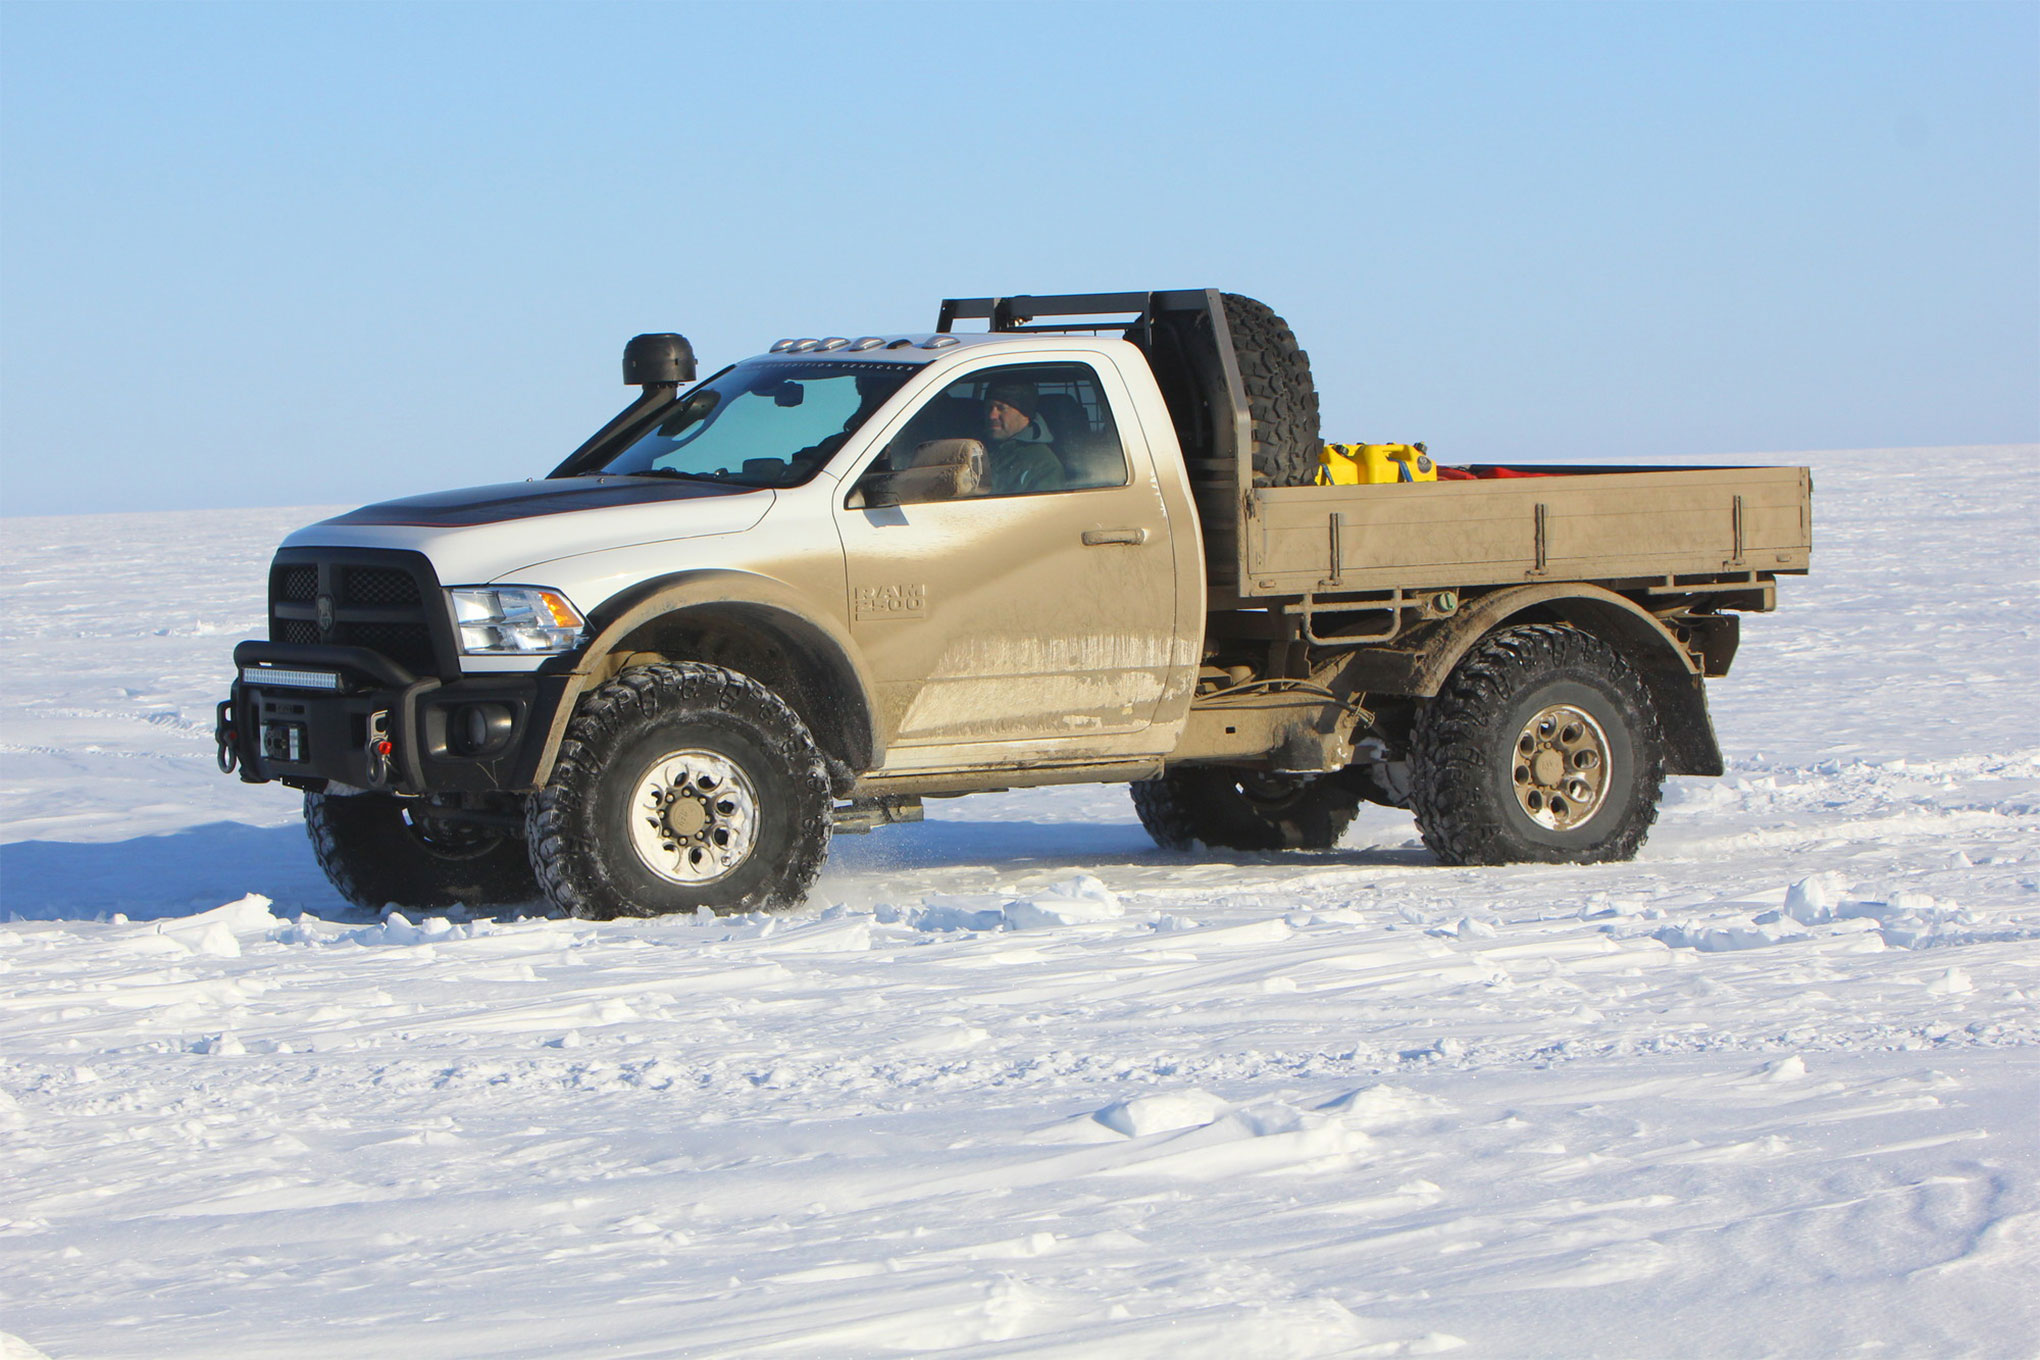 The regular-cab, tray-back truck was our favorite from the trip. It was lighter and nimbler than the bigger crew cabs, and the manual transmission meant it was more fun to drive. The slightly larger Irok tires would float over the snow, and the truck just felt at home exploring wherever we pointed it. If it looks familiar, it should. It was our cover truck of May 2015.